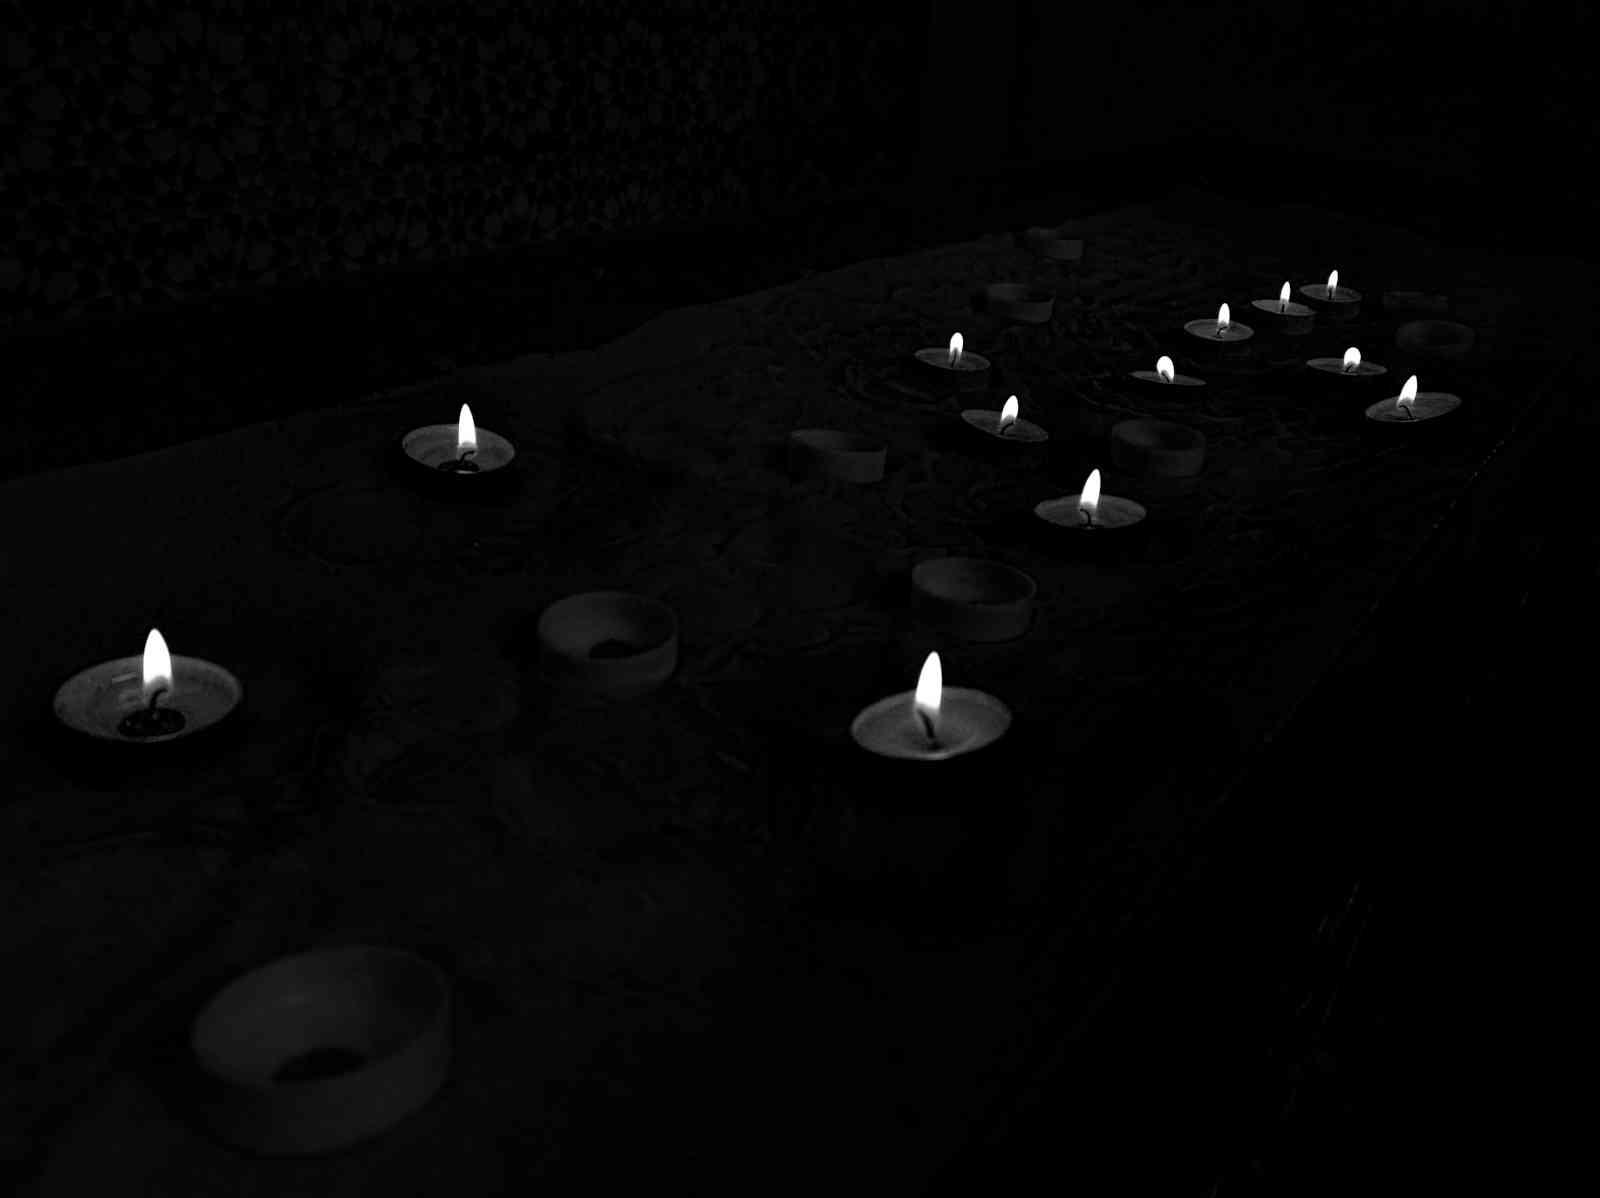 Candlelight 02